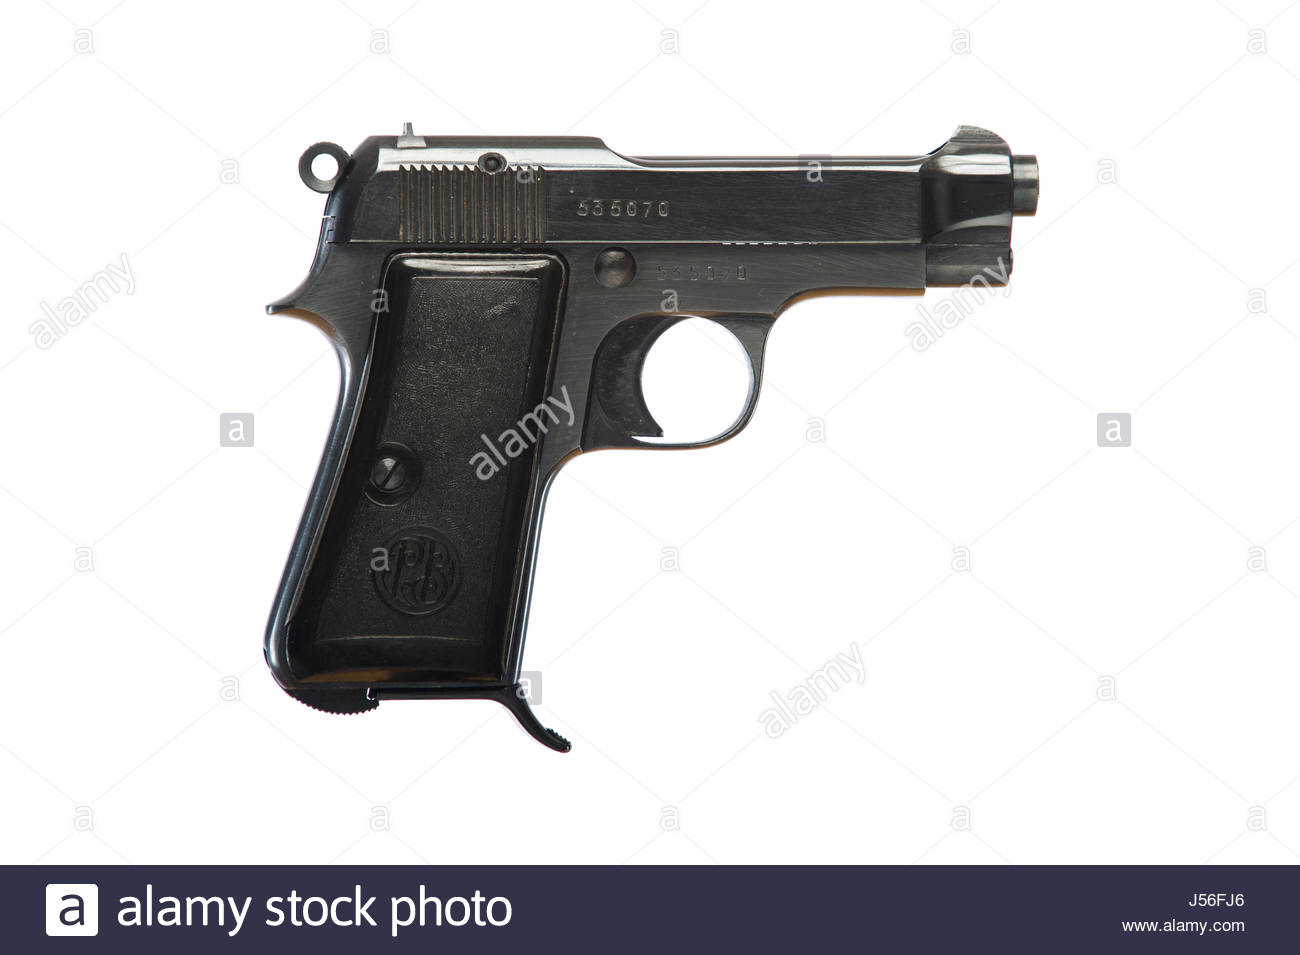 P Beretta 765-Brevettat Model-1934, .32 caliber automatic pistol, captured